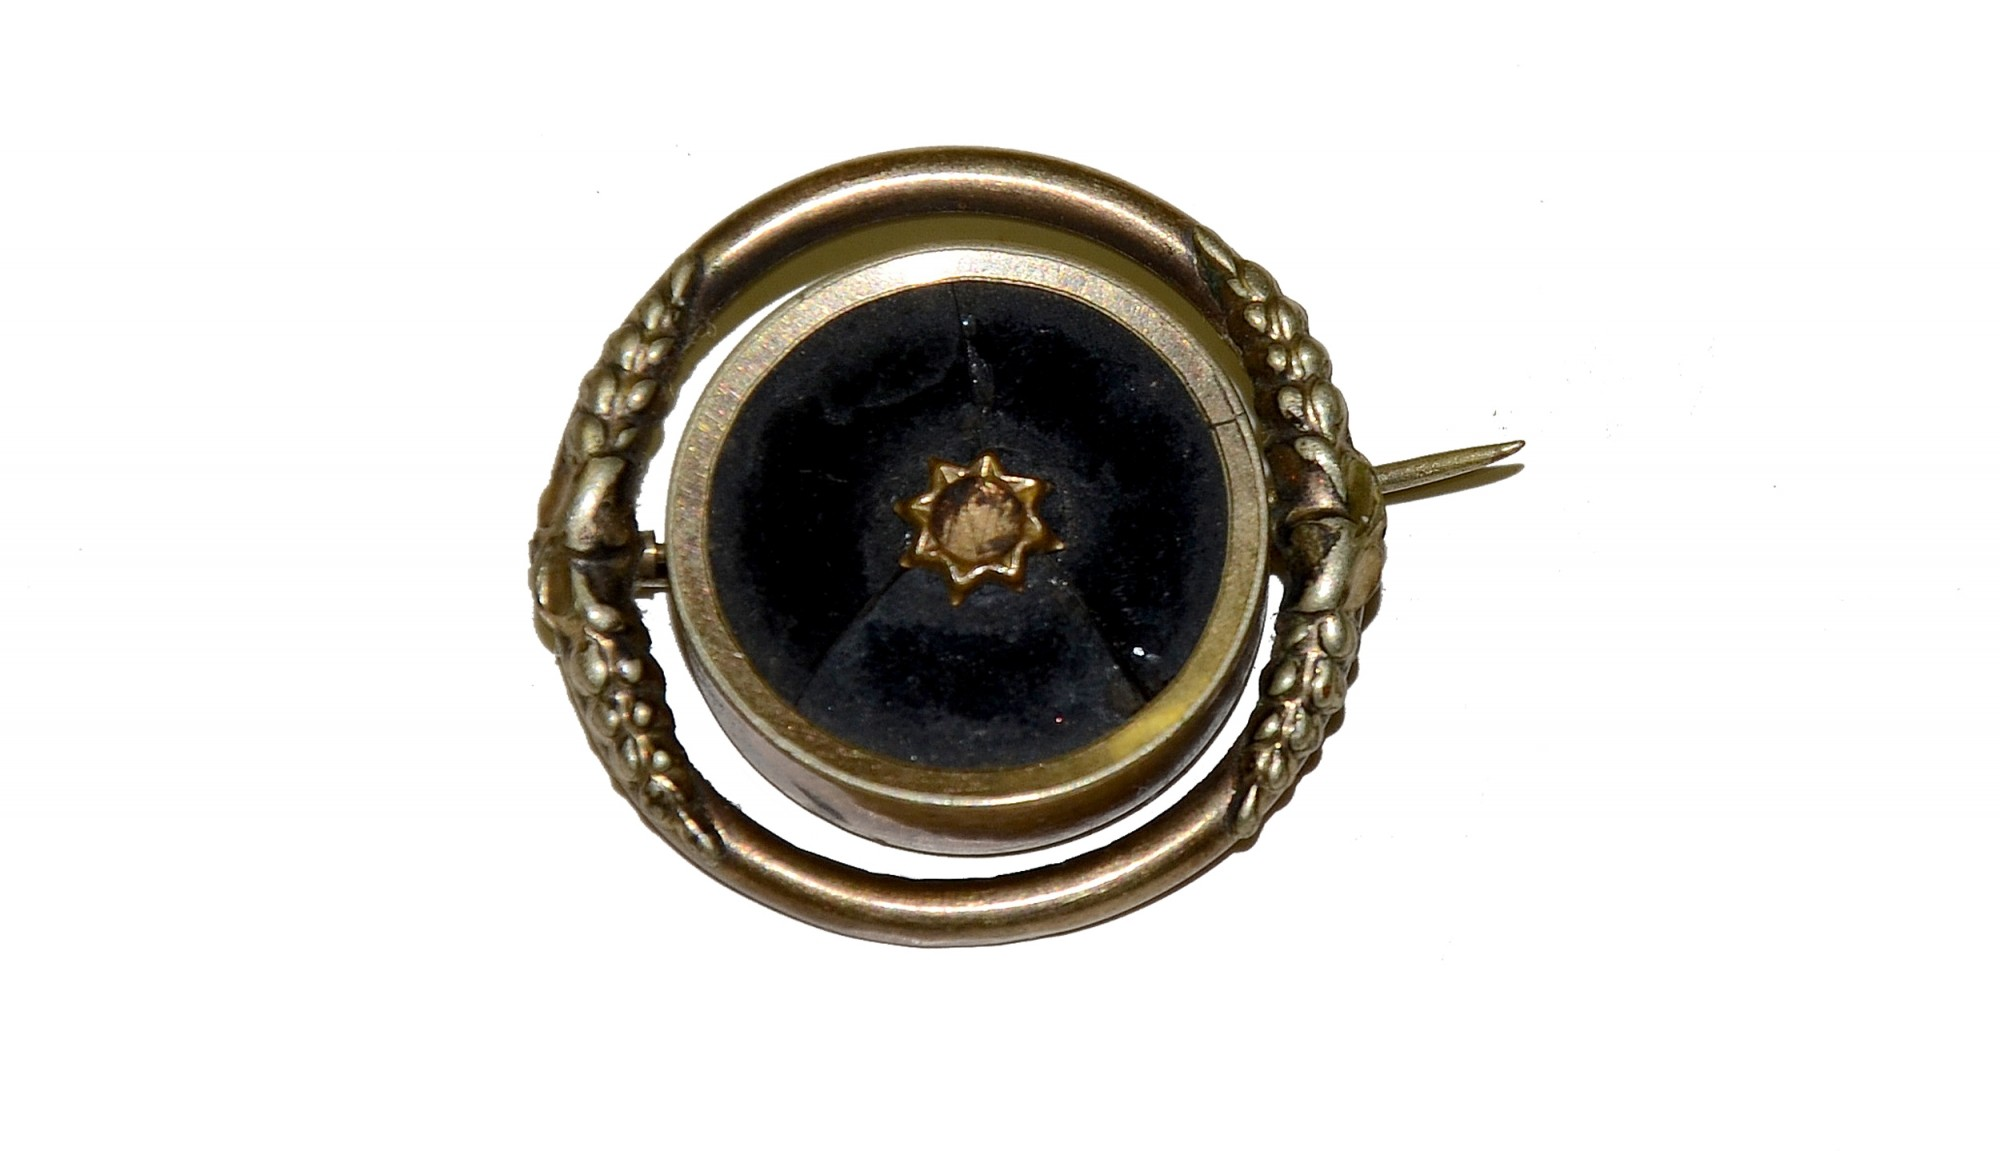 MOURNING PIN WITH LOCKET OF WOVEN HAIR